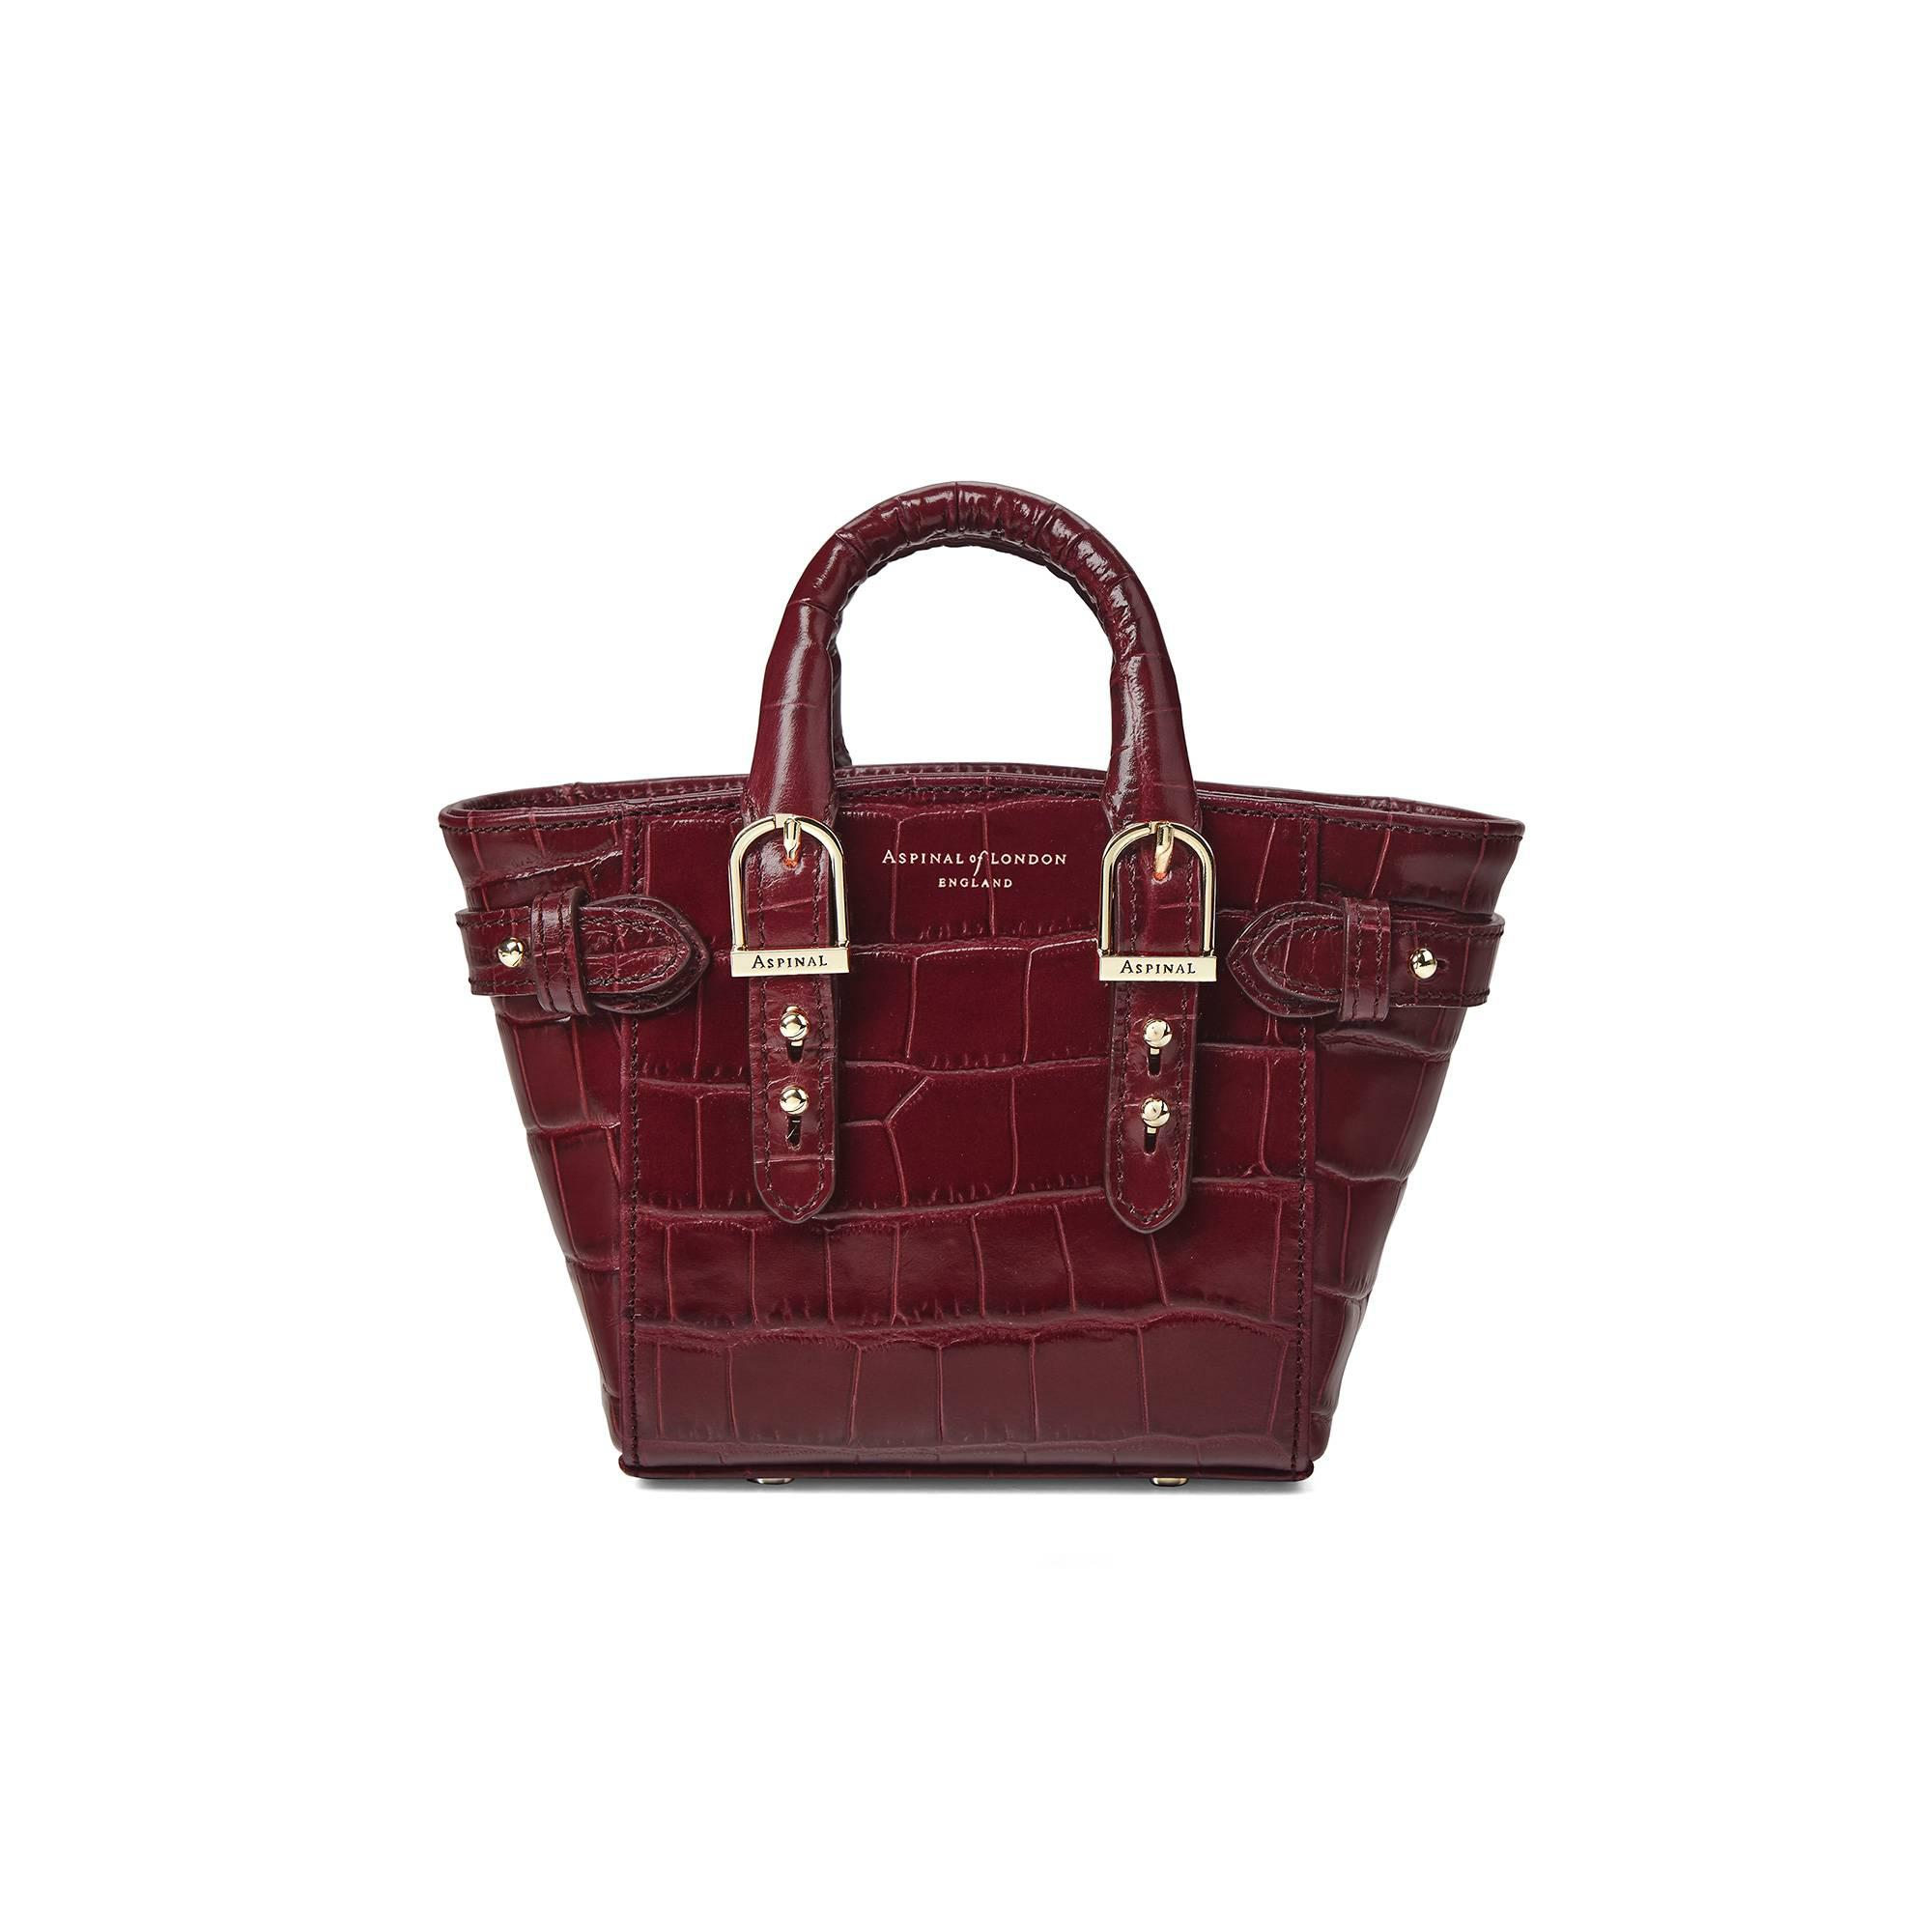 1367686ac6 Aspinal The Micro Marylebone Tote in Red - Lyst